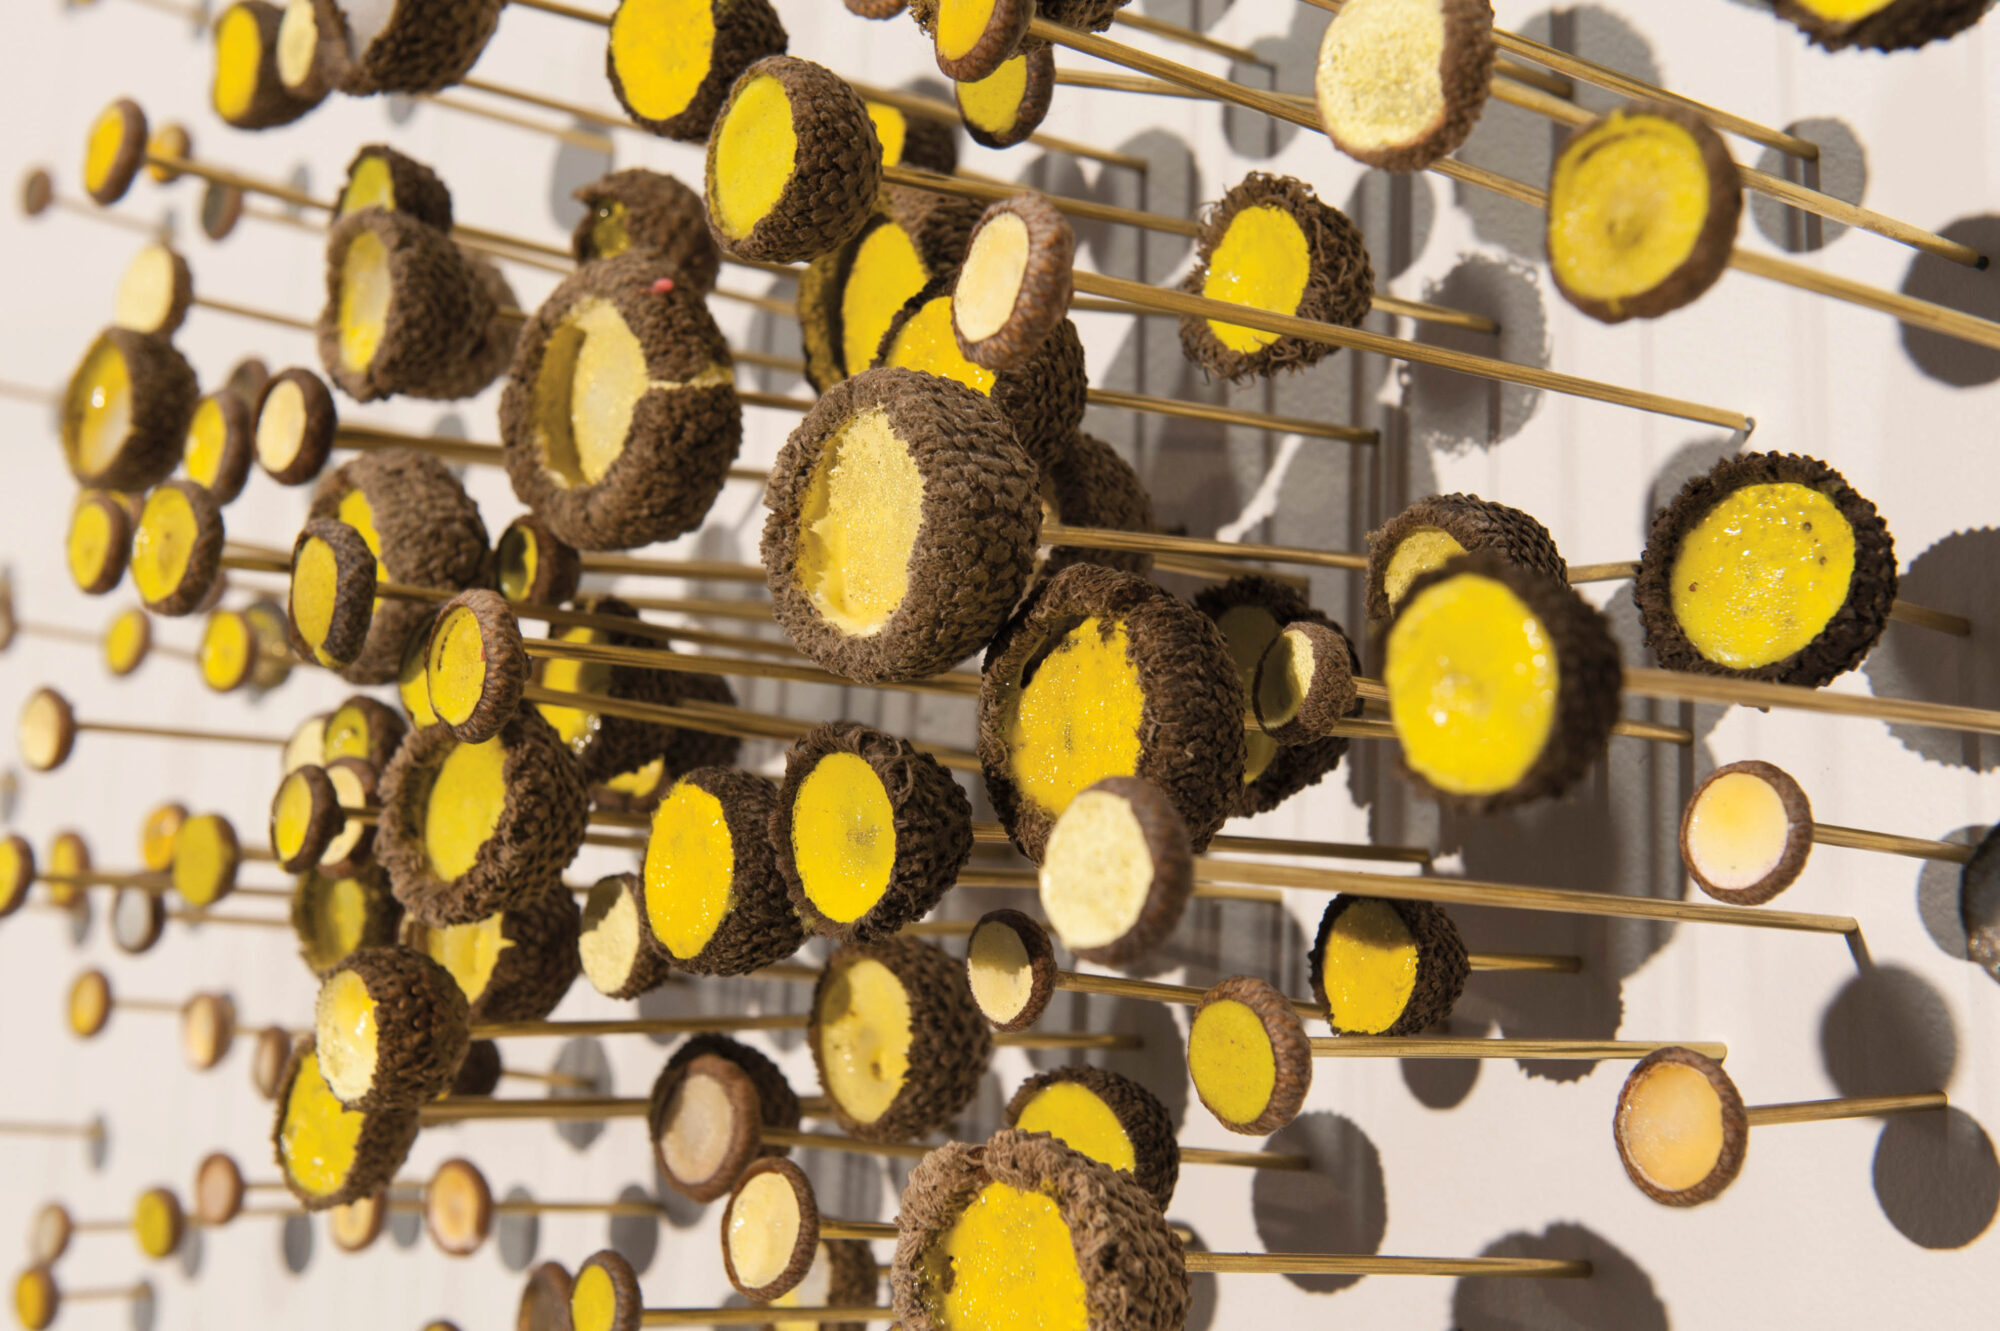 closeup shot of yellow and brain objects